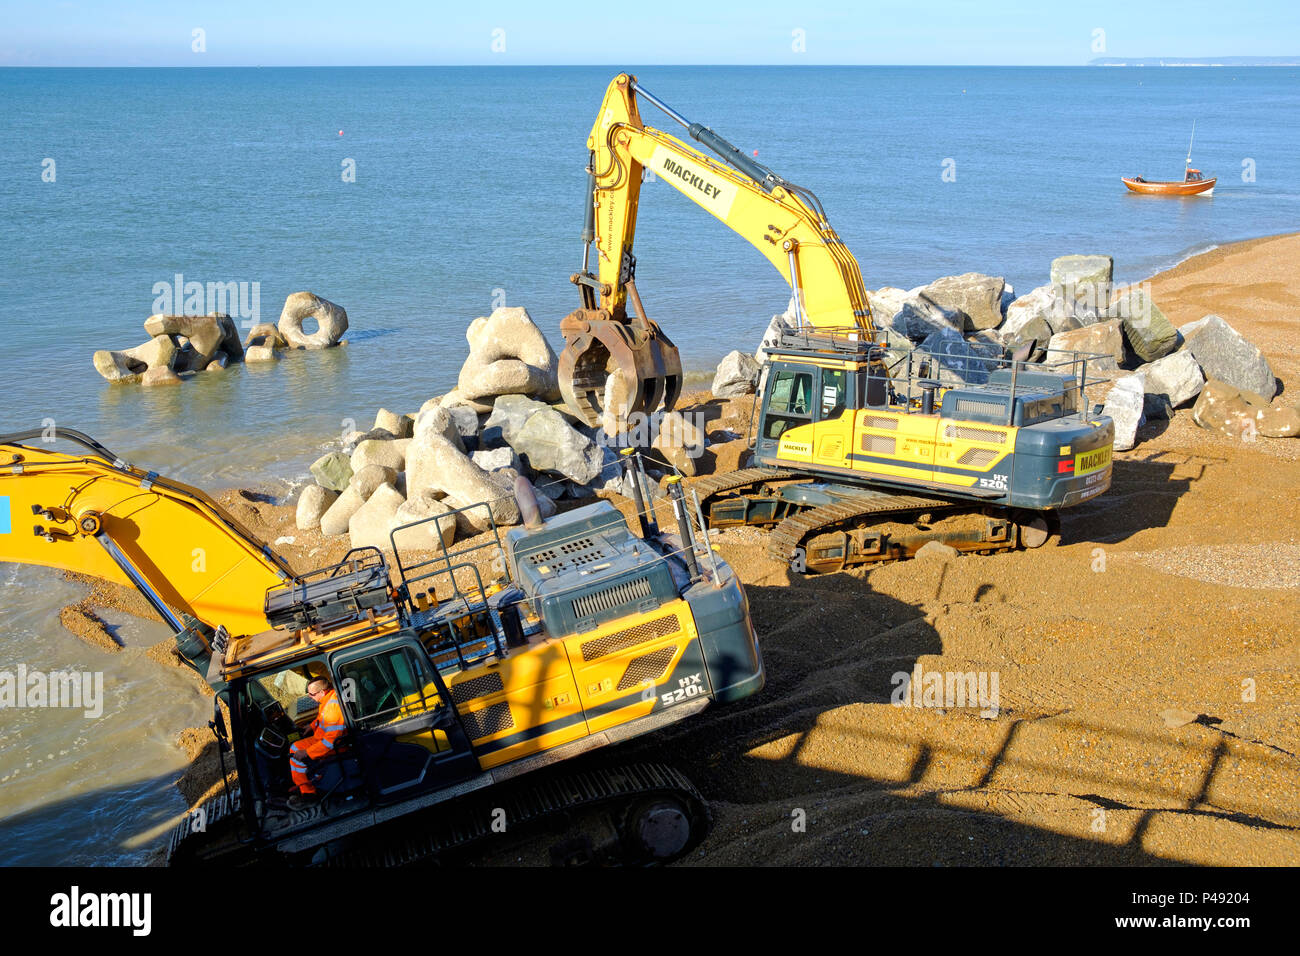 Hastings, UK. Building sea defences and strengthening the Harbour Arm, with granite boulders transported by sea from Falmouth in Cornwall. - Stock Image